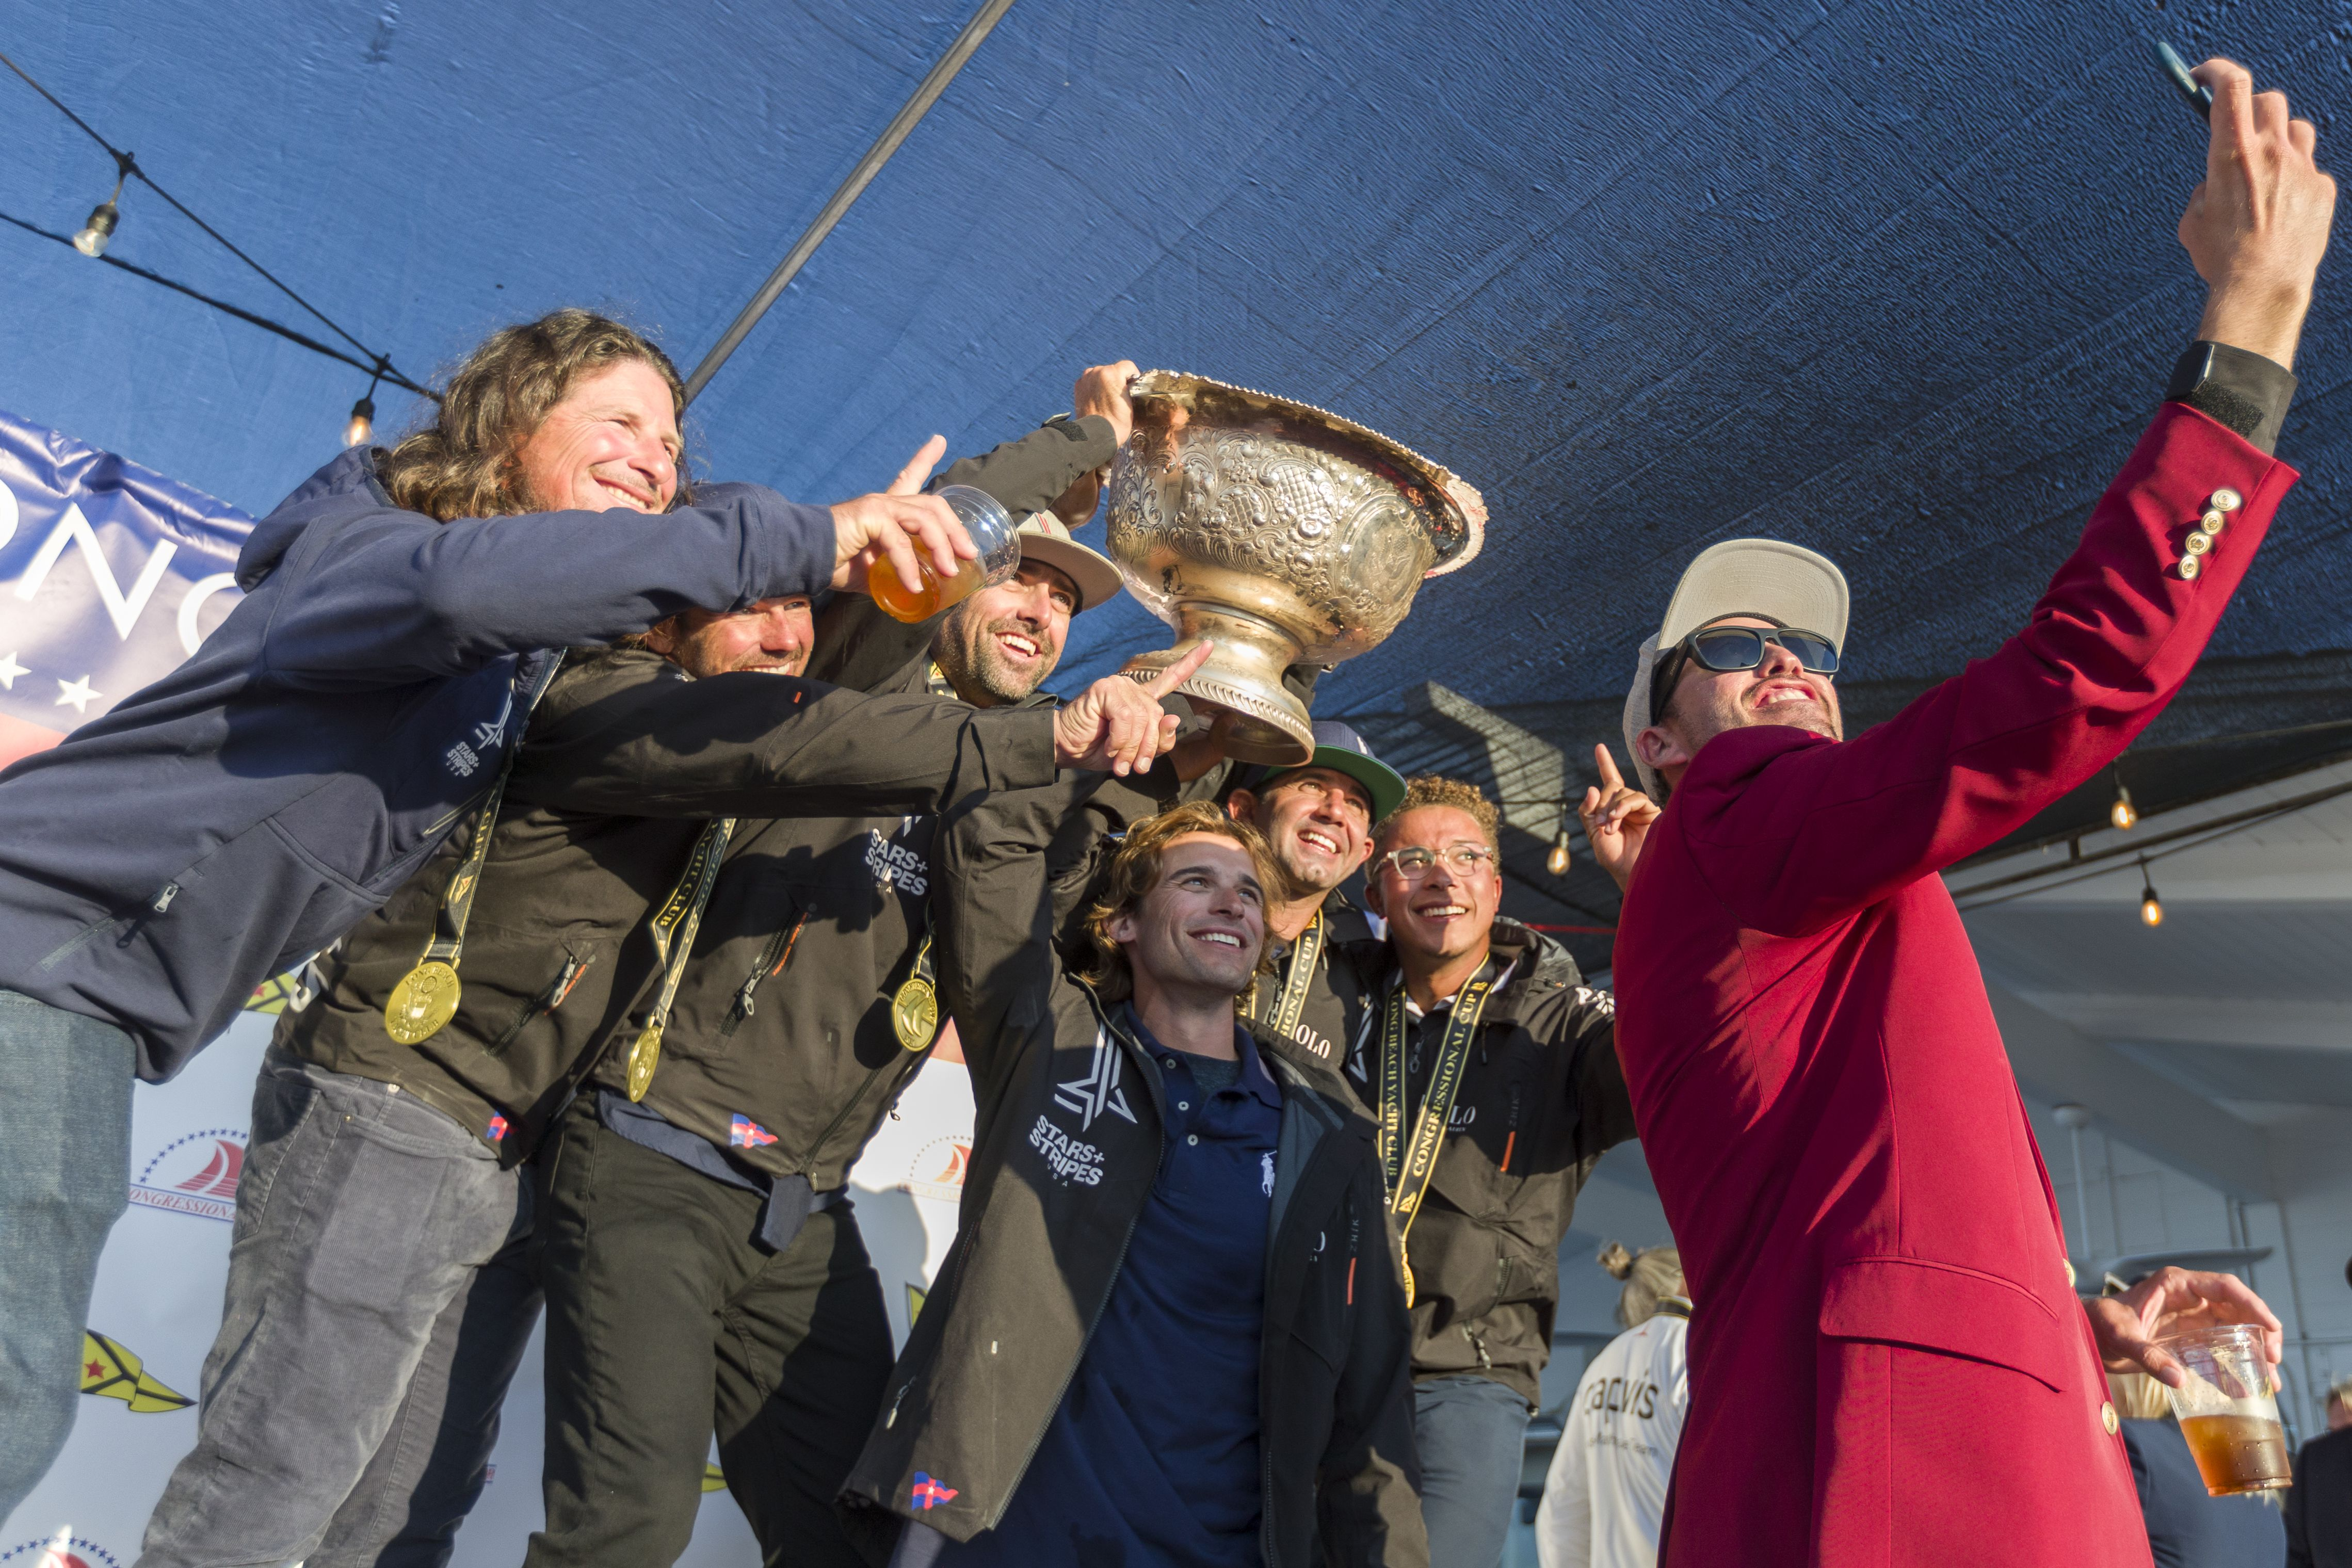 Stars + Stripes skipper Taylor Canfield and the Congressional Cup's winning squad celebrate a decisive victory in Long Beach.